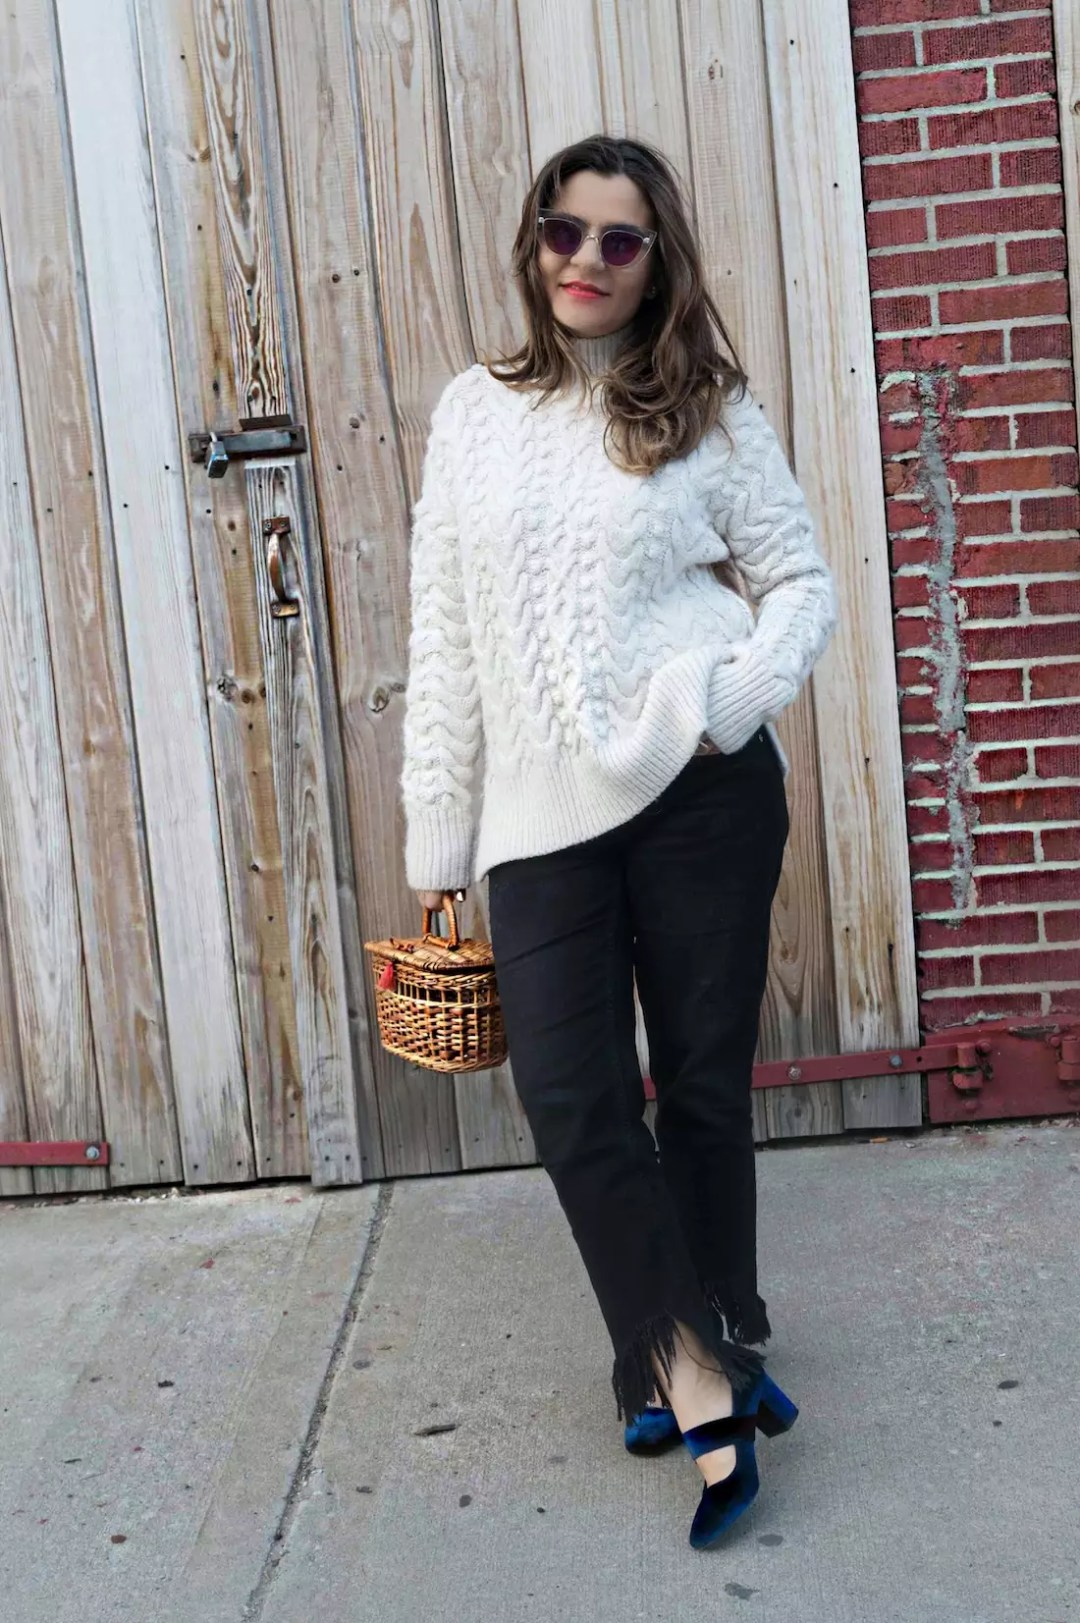 straw-bag-velvet-mary-jane-shoes-oversized-sweater-alley-girl-fashion-technology-blogger